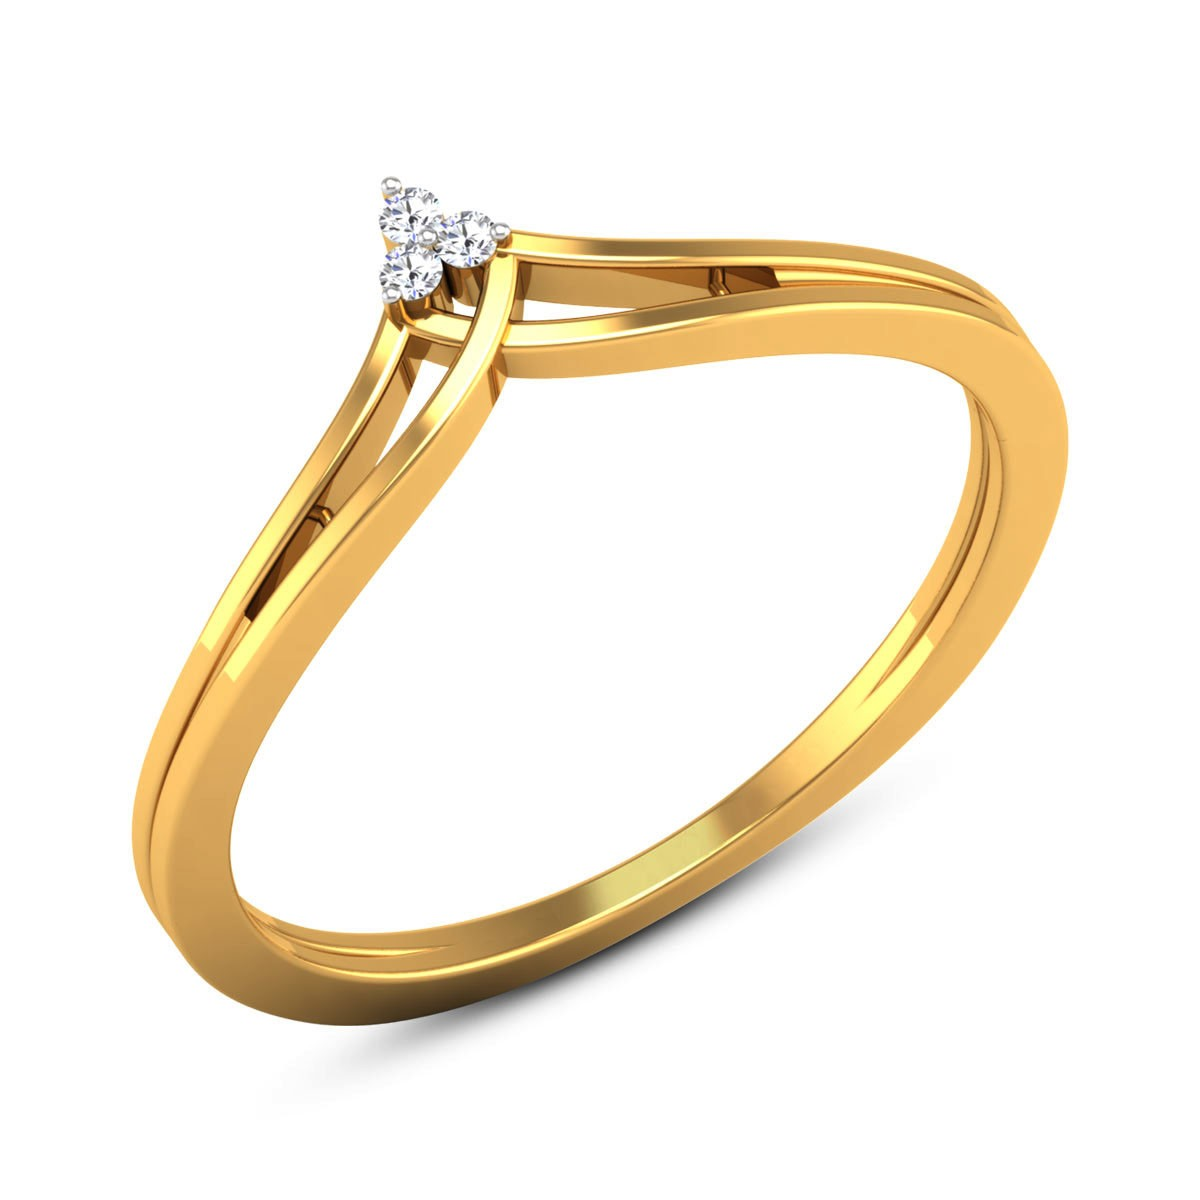 Anchitha Diamond Ring